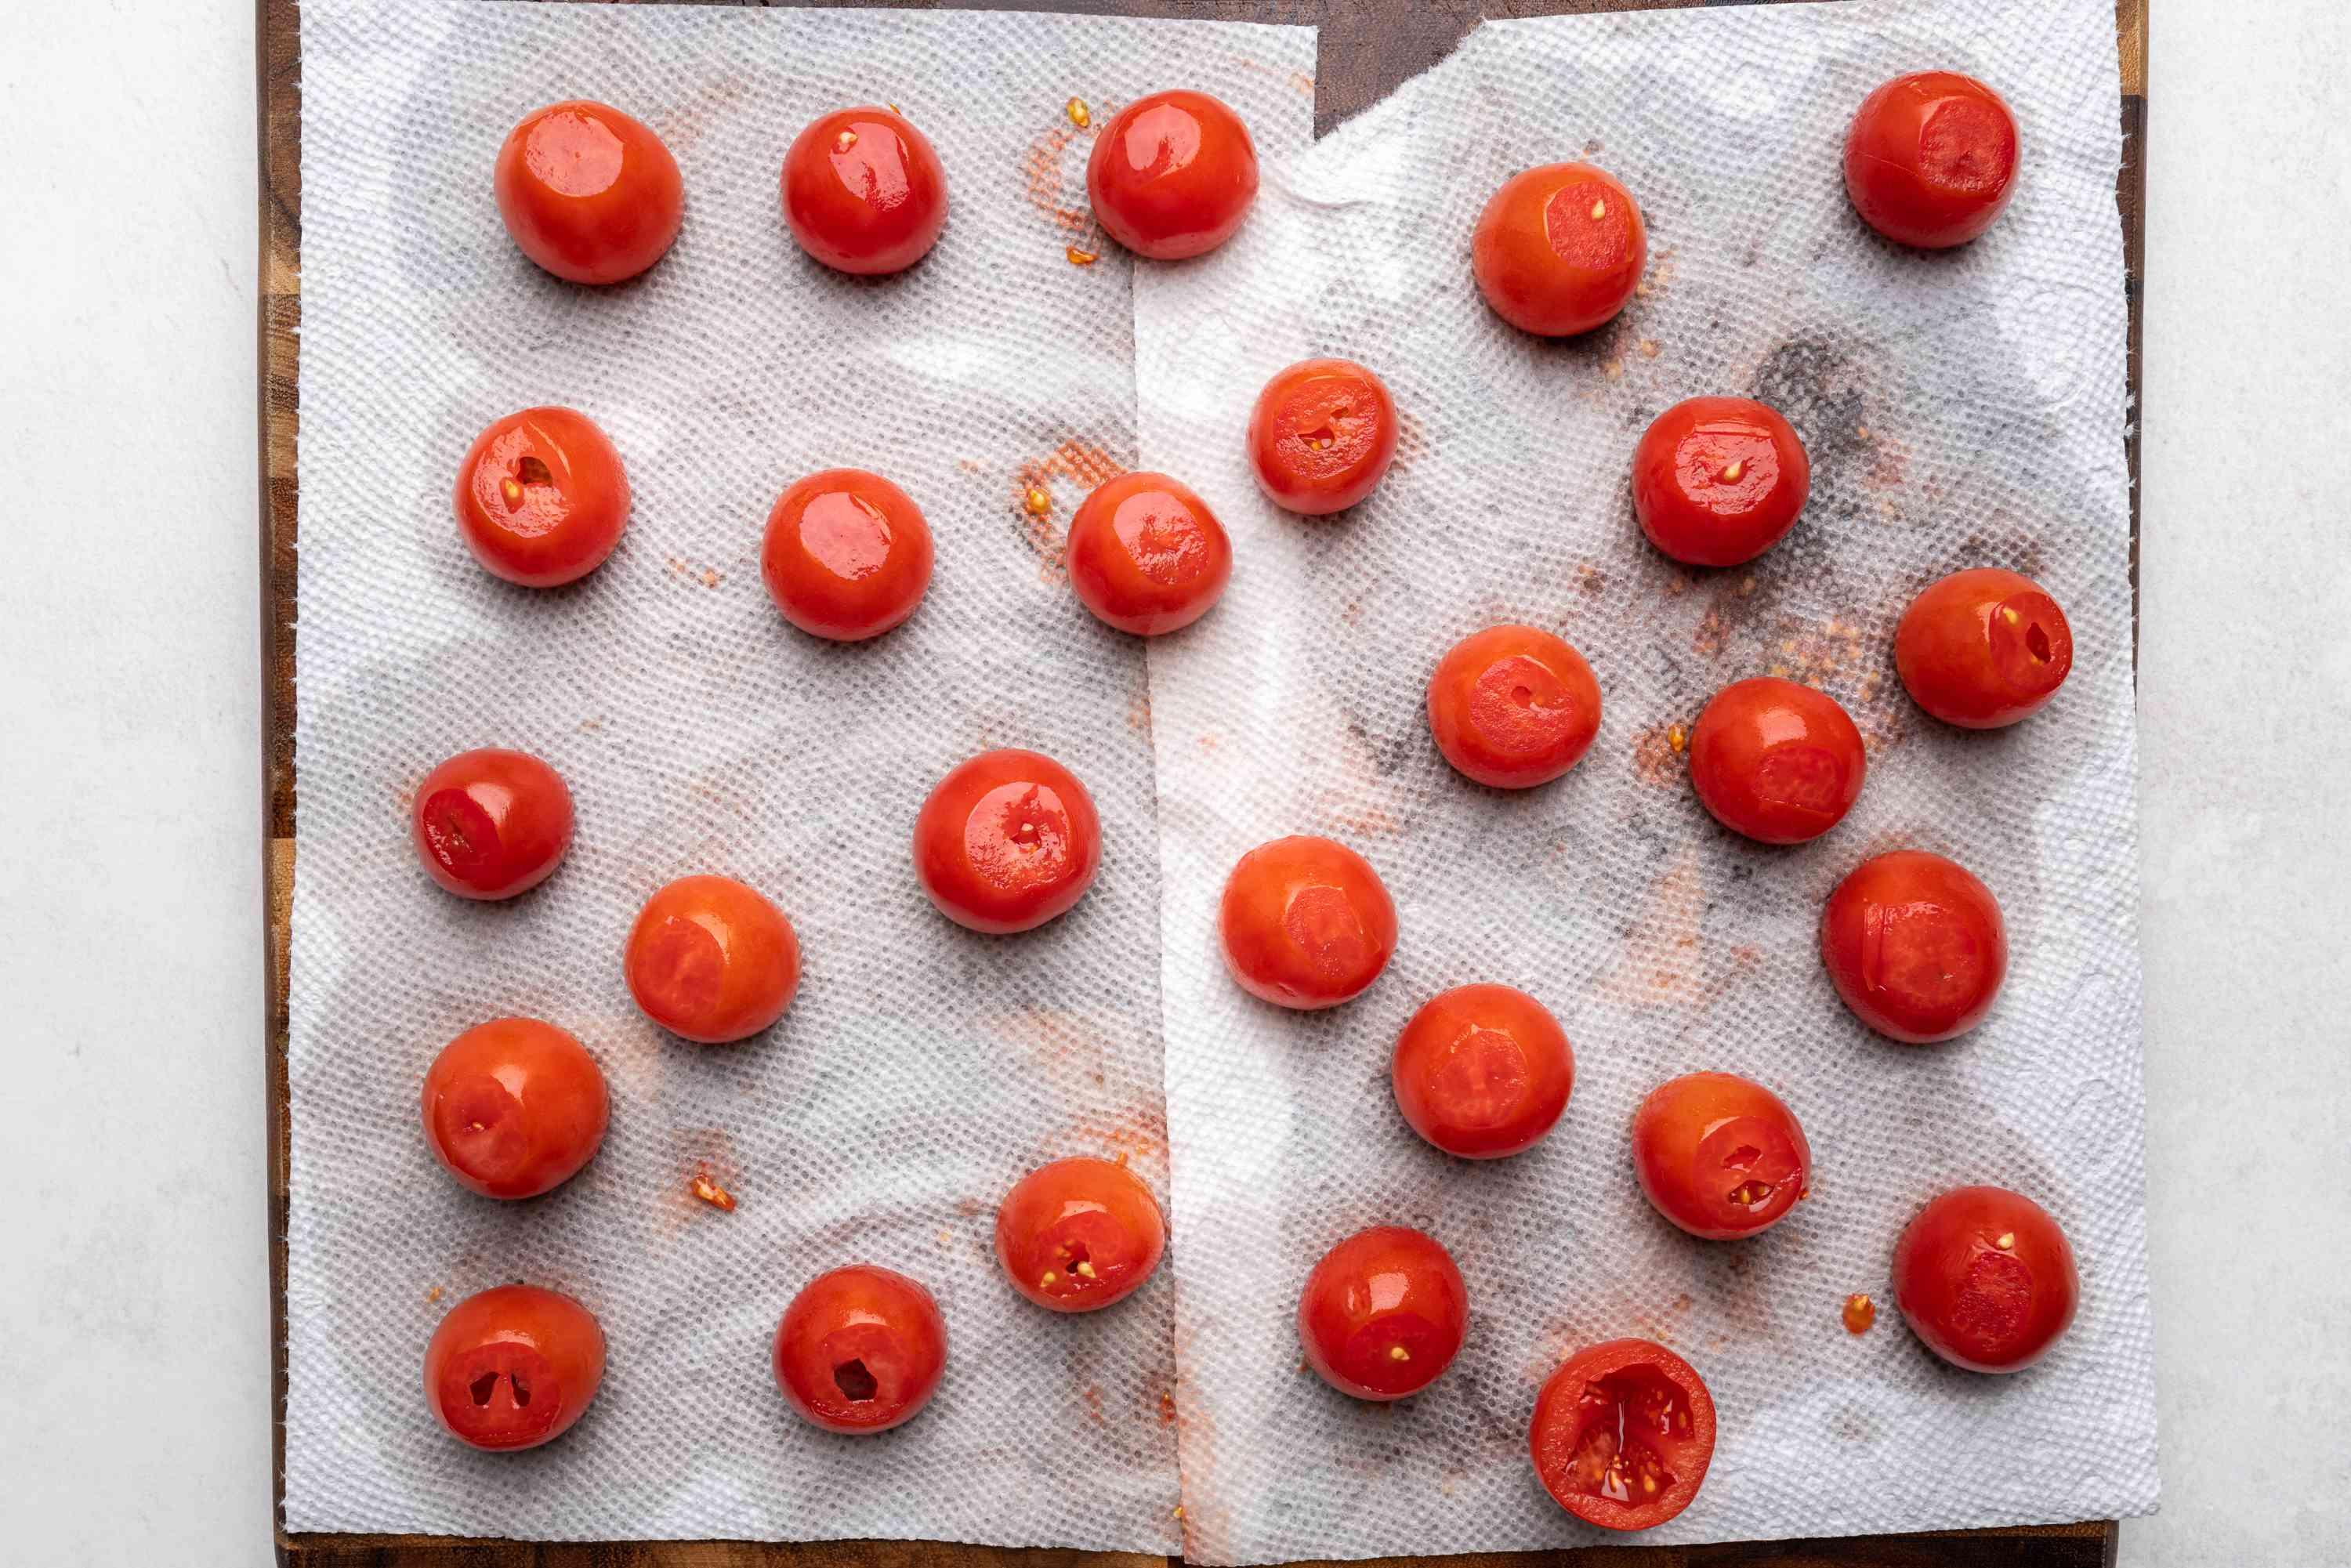 cherry tomatoes on paper towels